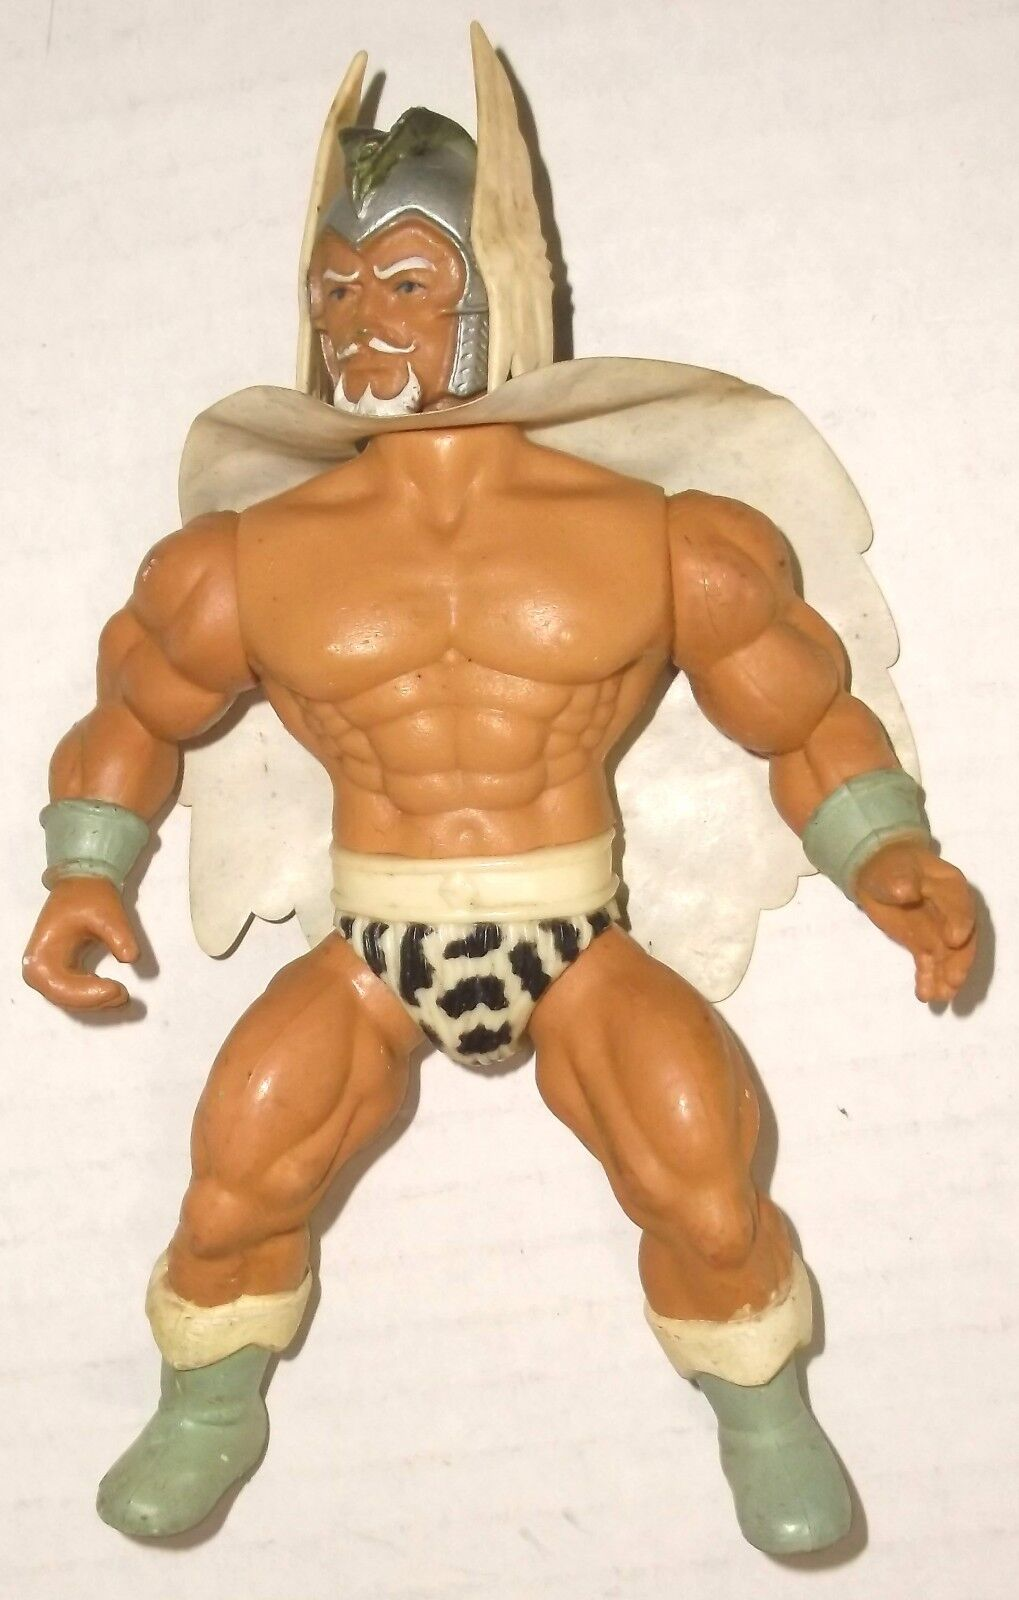 REMCO 1982 THE WARLORD figure EXC COND W CAPE Lost World VINTAGE ACTION FIGURE